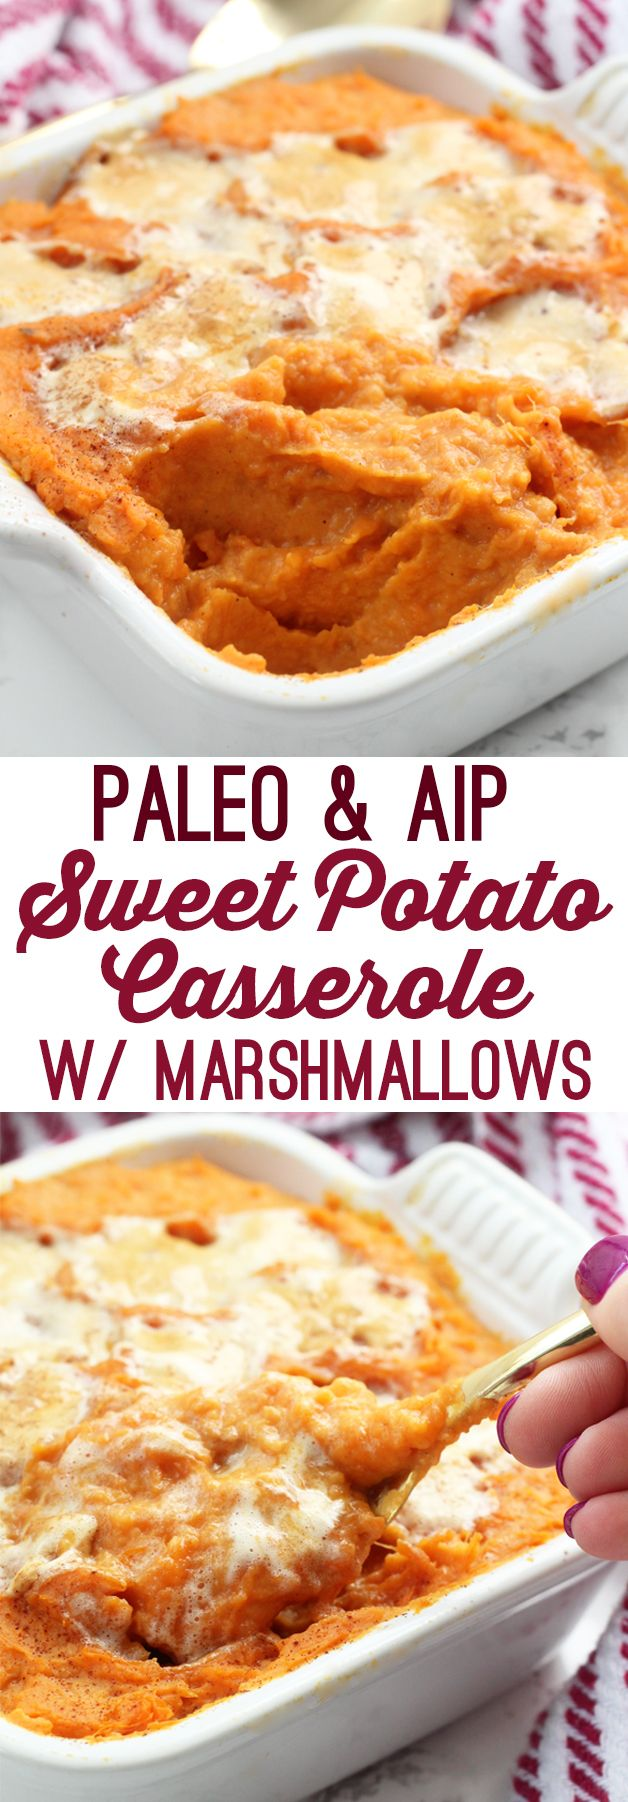 Sweet Potato Casserole with Marshmallows (Paleo & AIP) - Unbound Wellness